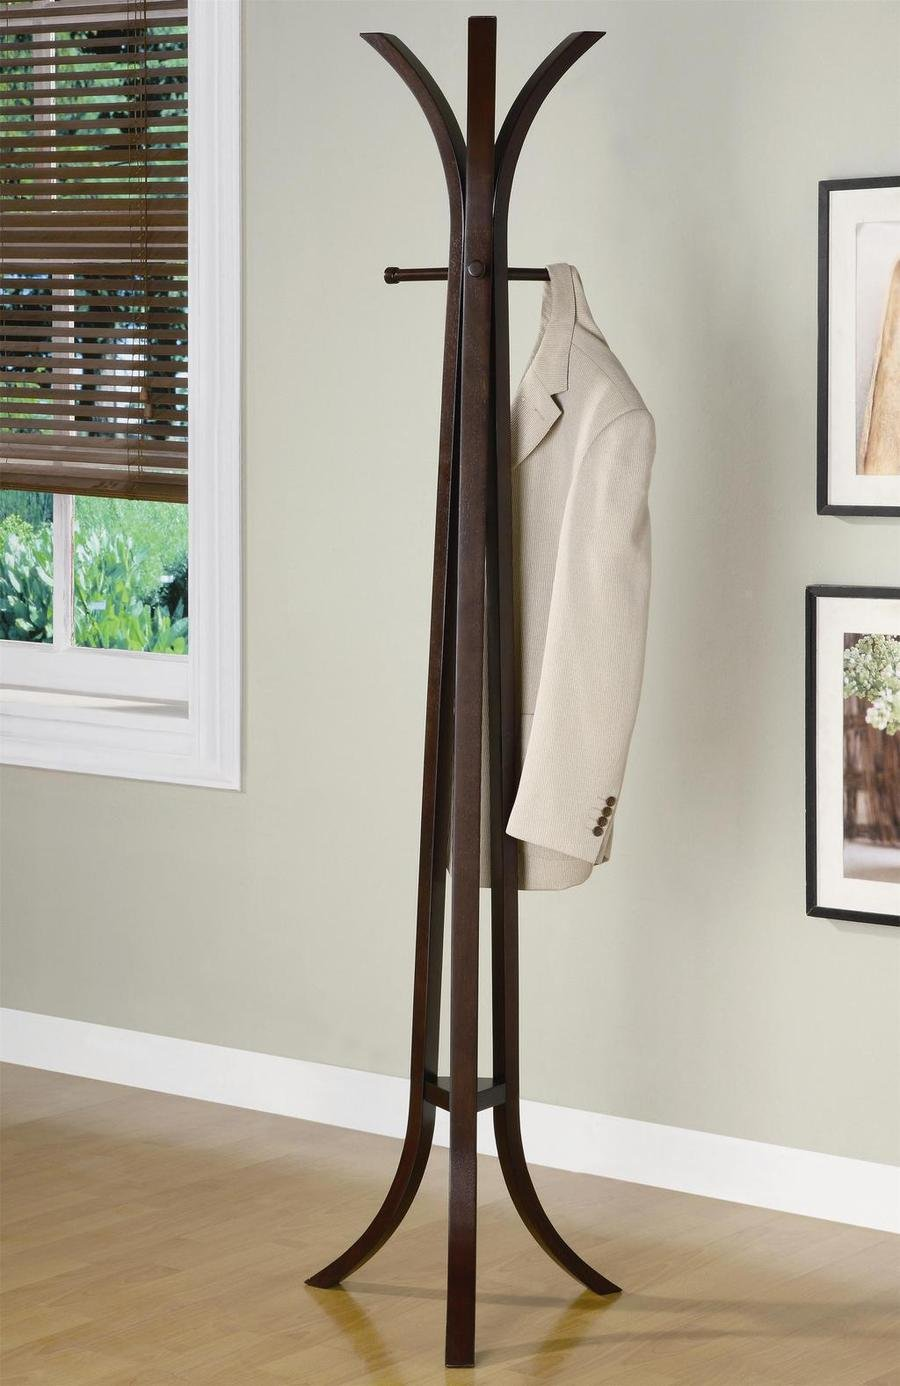 amazoncom modern decor coat rack entryway hall tree with four . amazoncom modern decor coat rack entryway hall tree with four hangers incappuccino solid wood finish (item vista furniture cf) kitchen dining